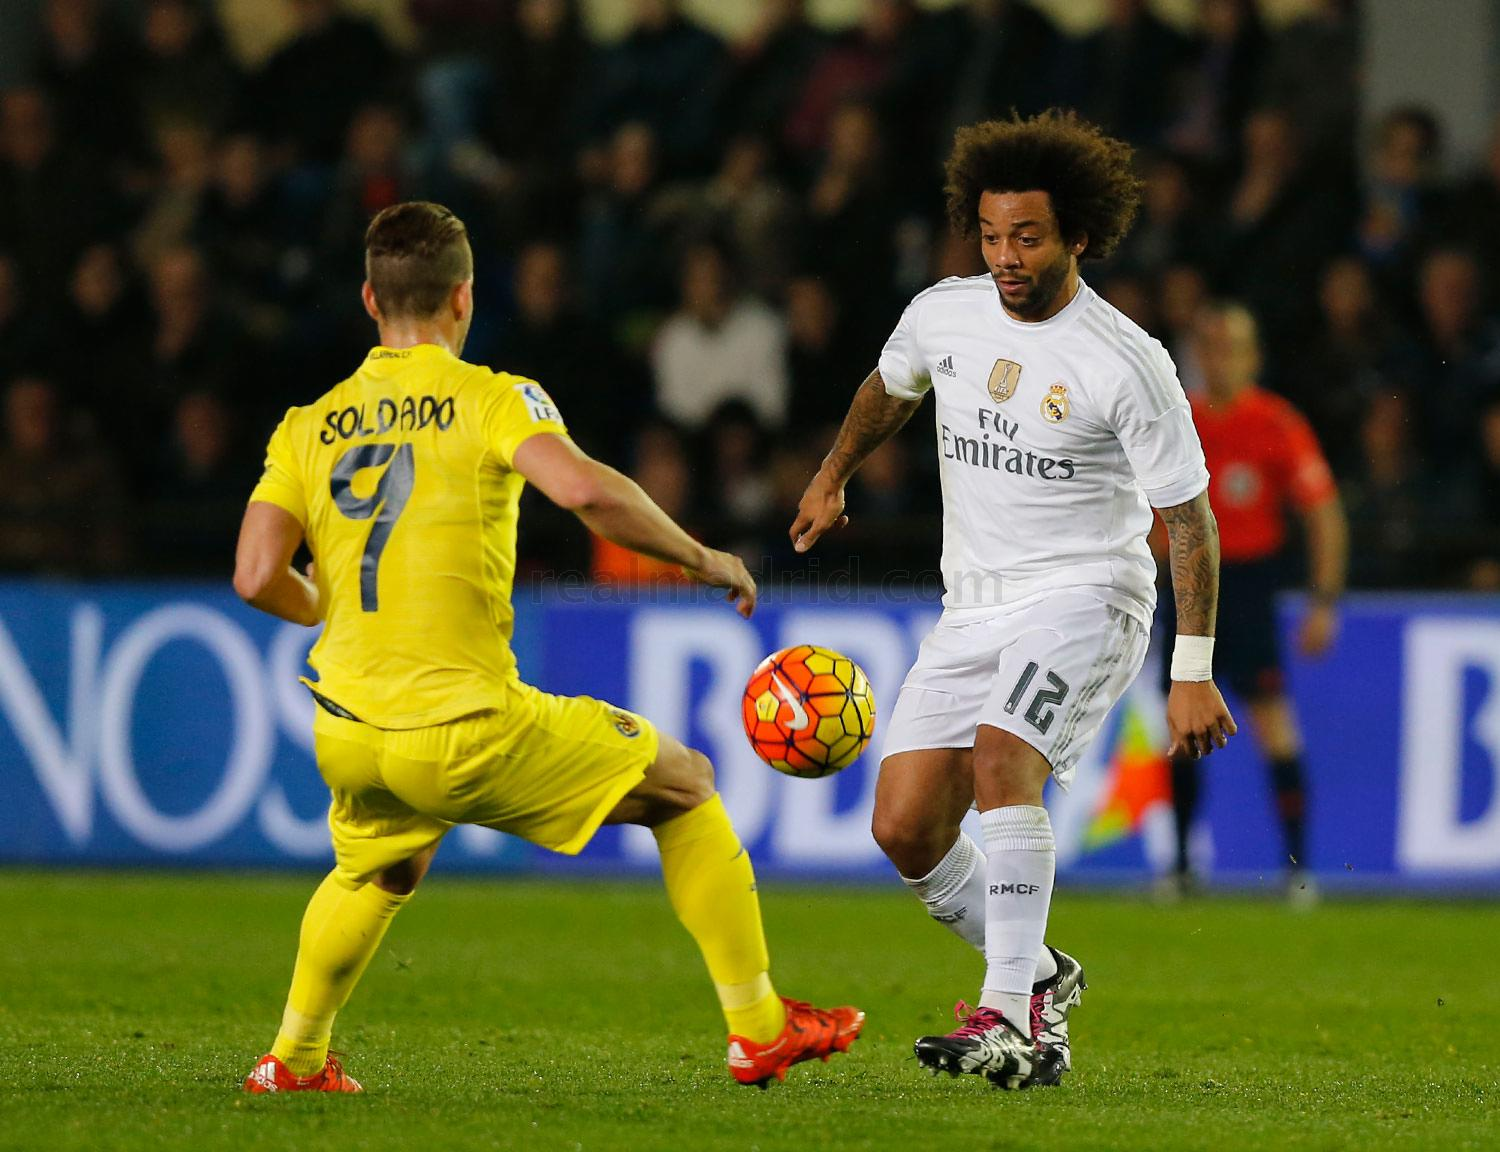 Real Madrid - Villarreal - Real Madrid - 13-12-2015